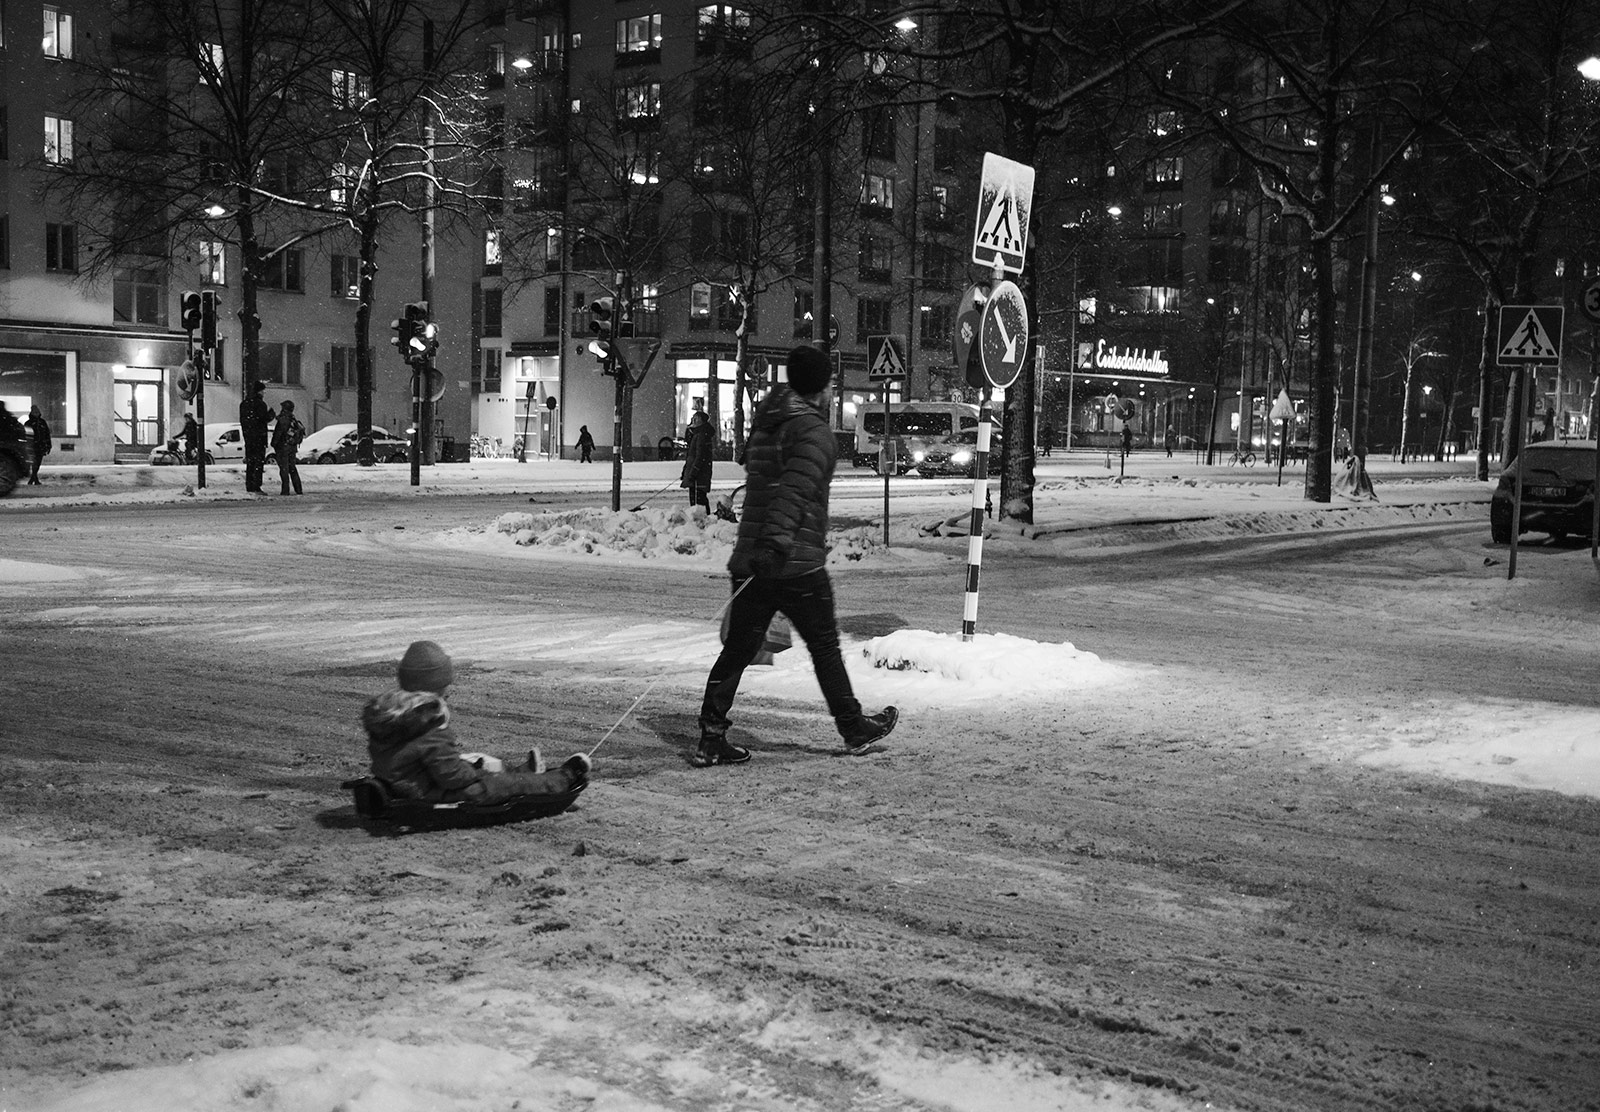 Man pulling child in sledge